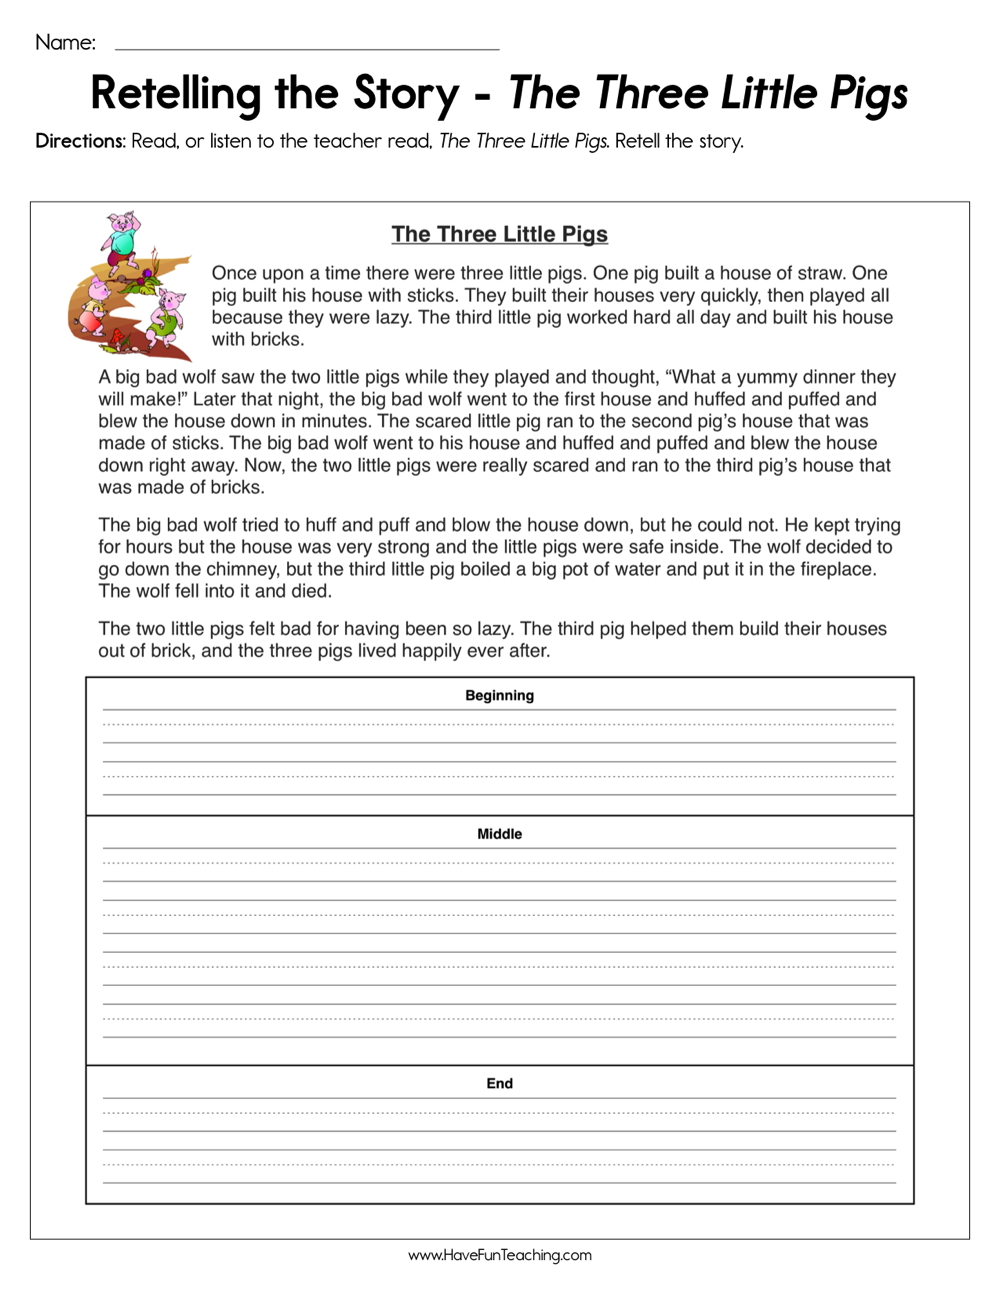 medium resolution of Retelling the Story The Three Little Pigs Worksheet • Have Fun Teaching